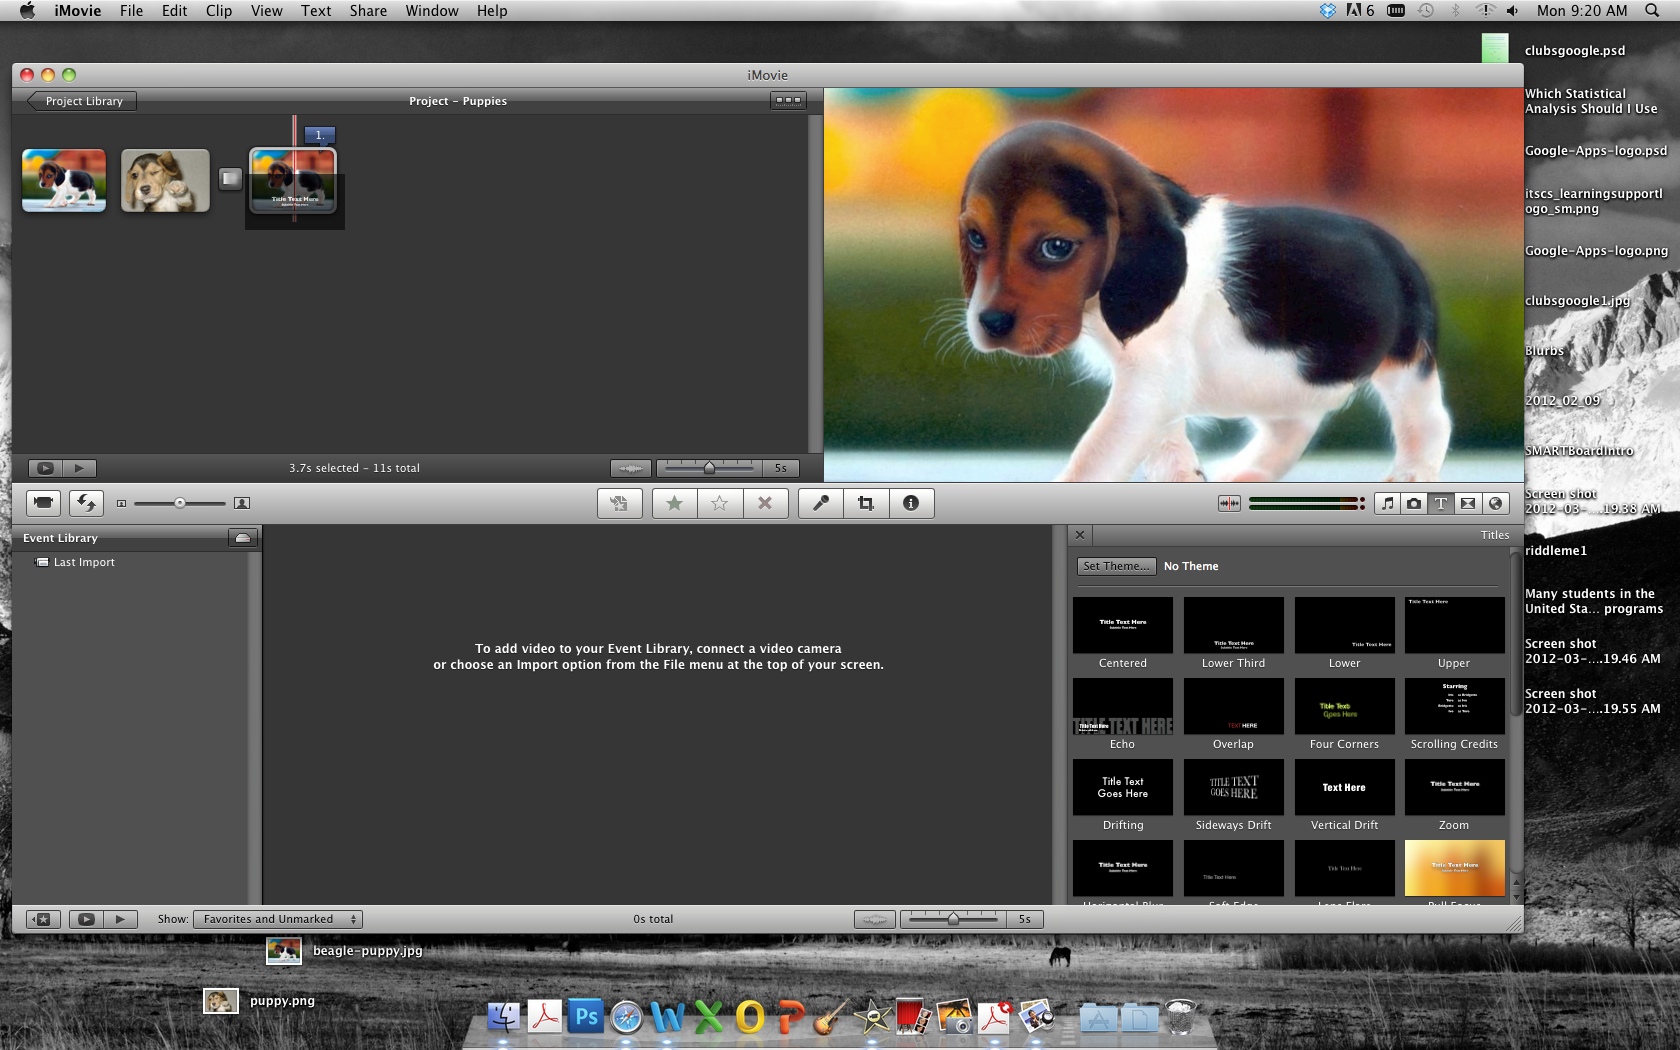 Tips On Adding Subtitles In Imovie 11 10 9 8 Subtitled Ads 10 Things